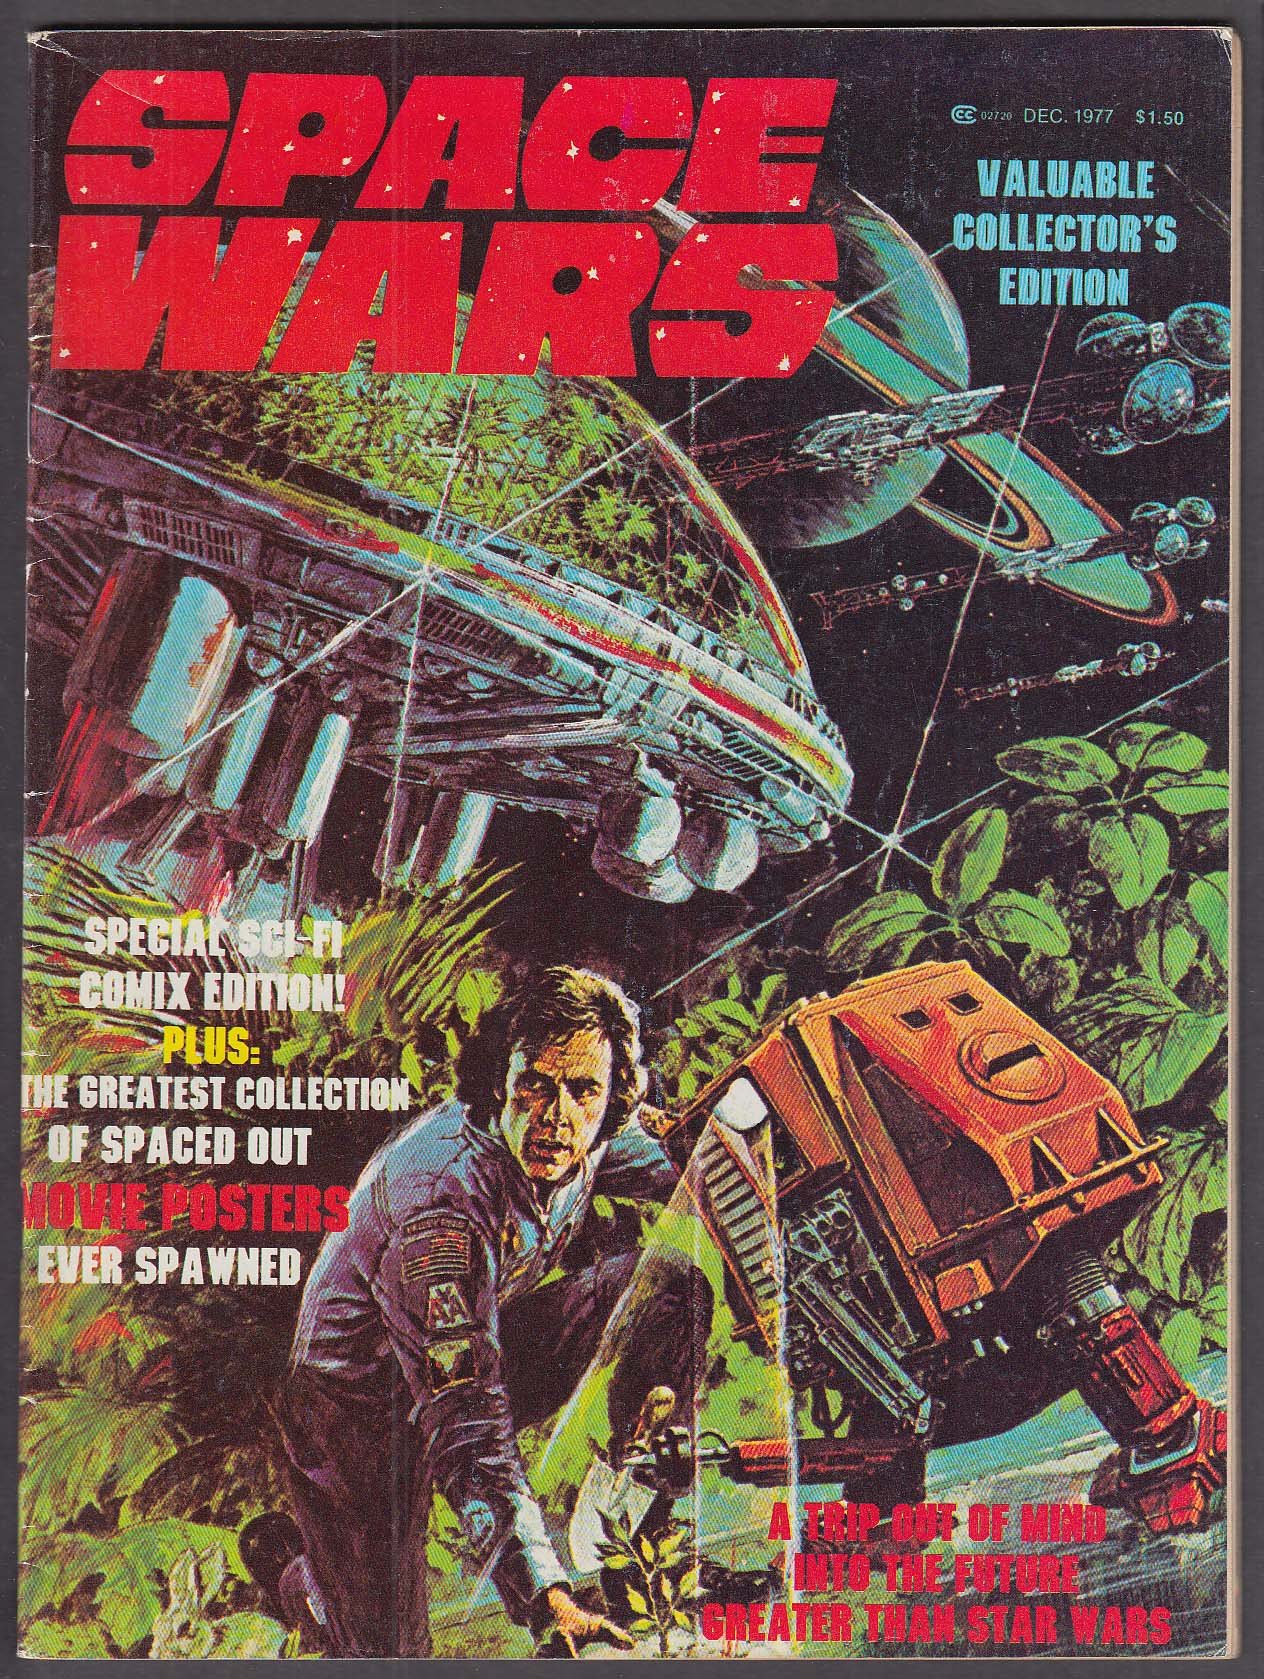 Image for SPACE WARS Star Trek Logan's Run Sci-Fi Comics Edition ++ 12 1977